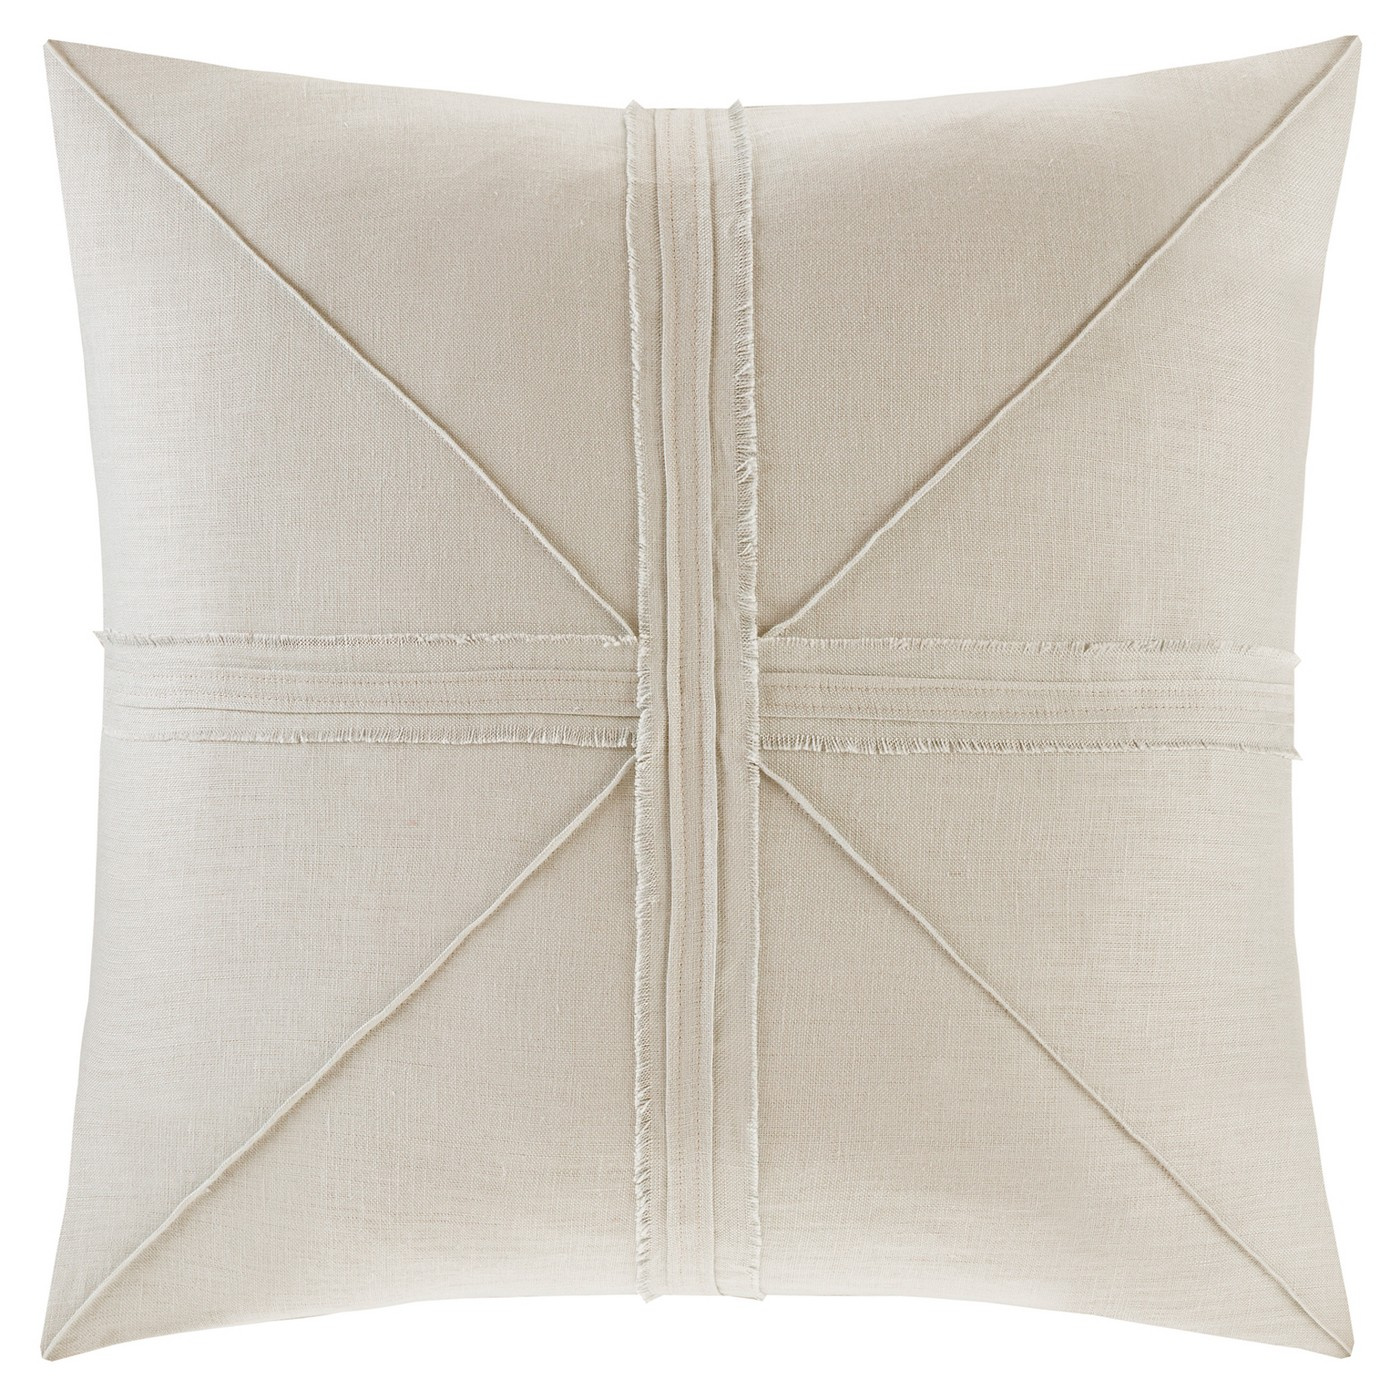 White Fifer Frayed Throw Pillow - image 1 of 3